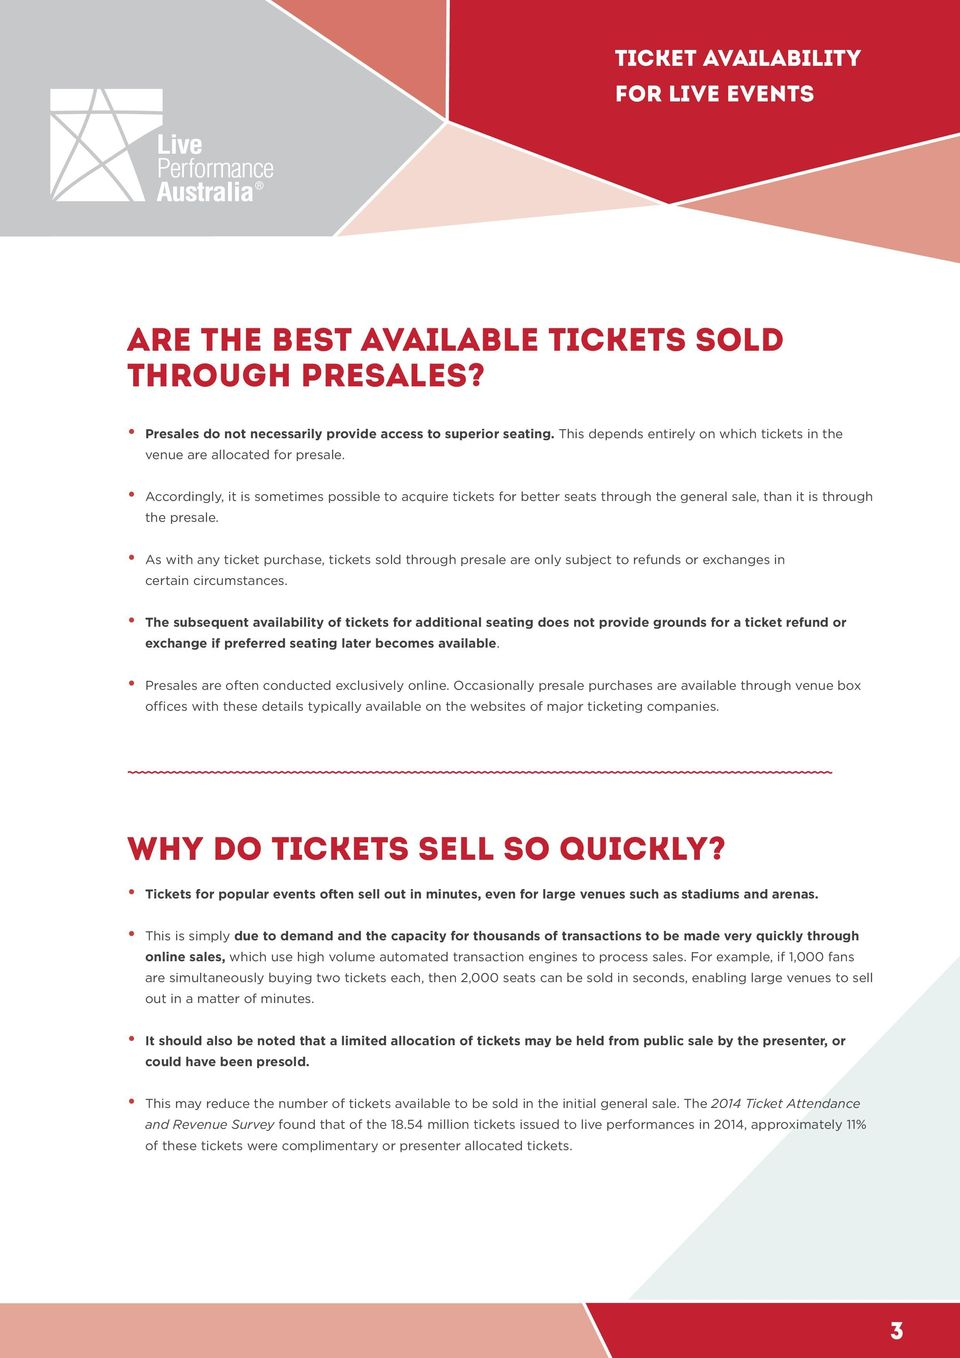 As with any ticket purchase, tickets sold through presale are only subject to refunds or exchanges in certain circumstances.